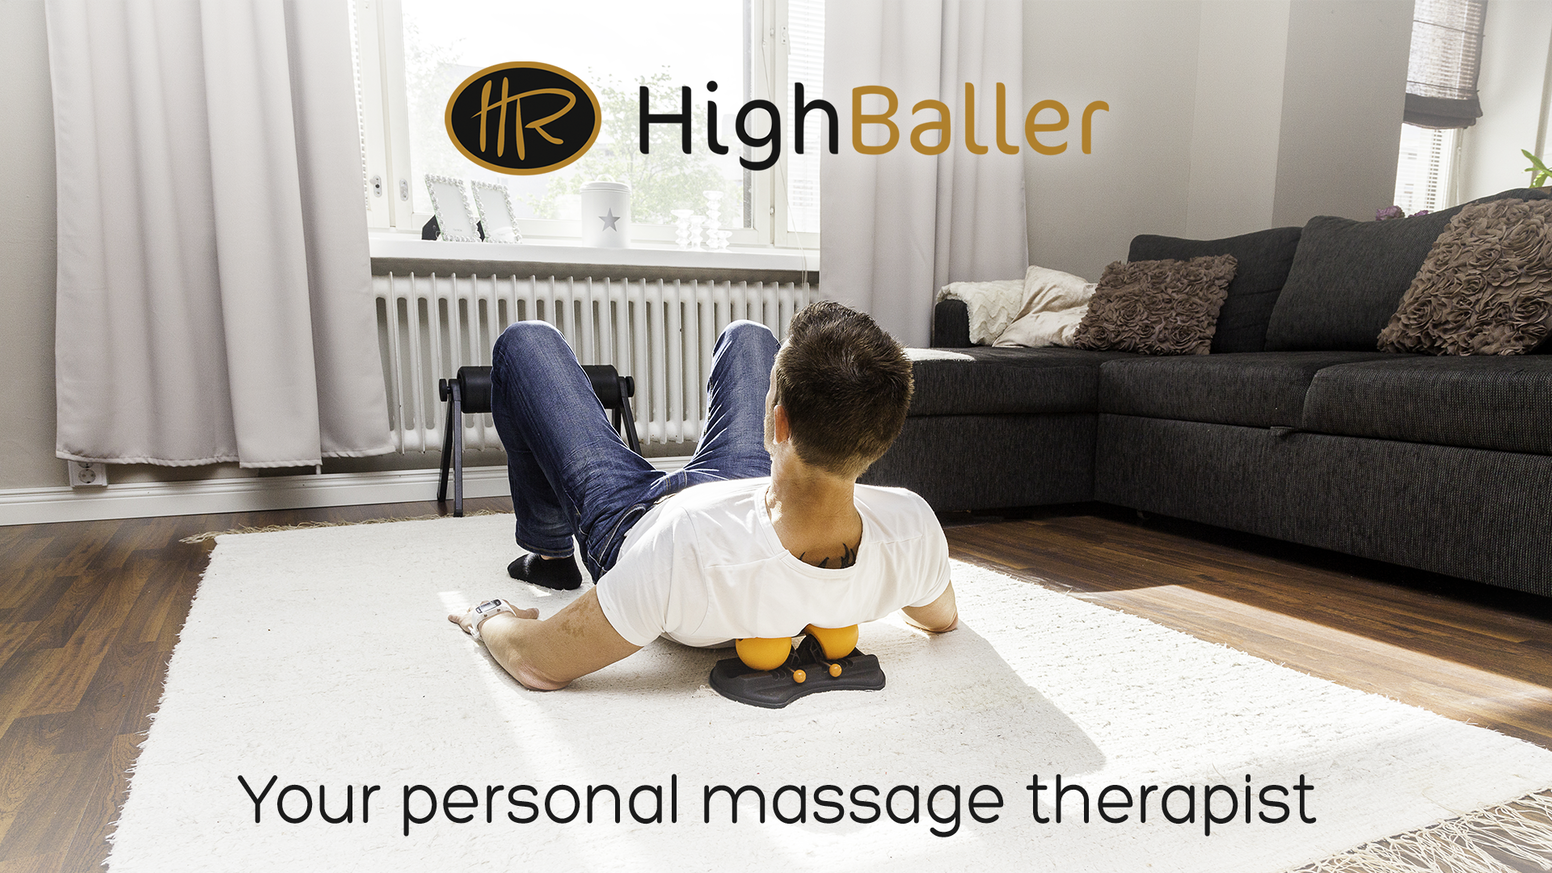 An adjustable massage device engineered for ergonomic and 